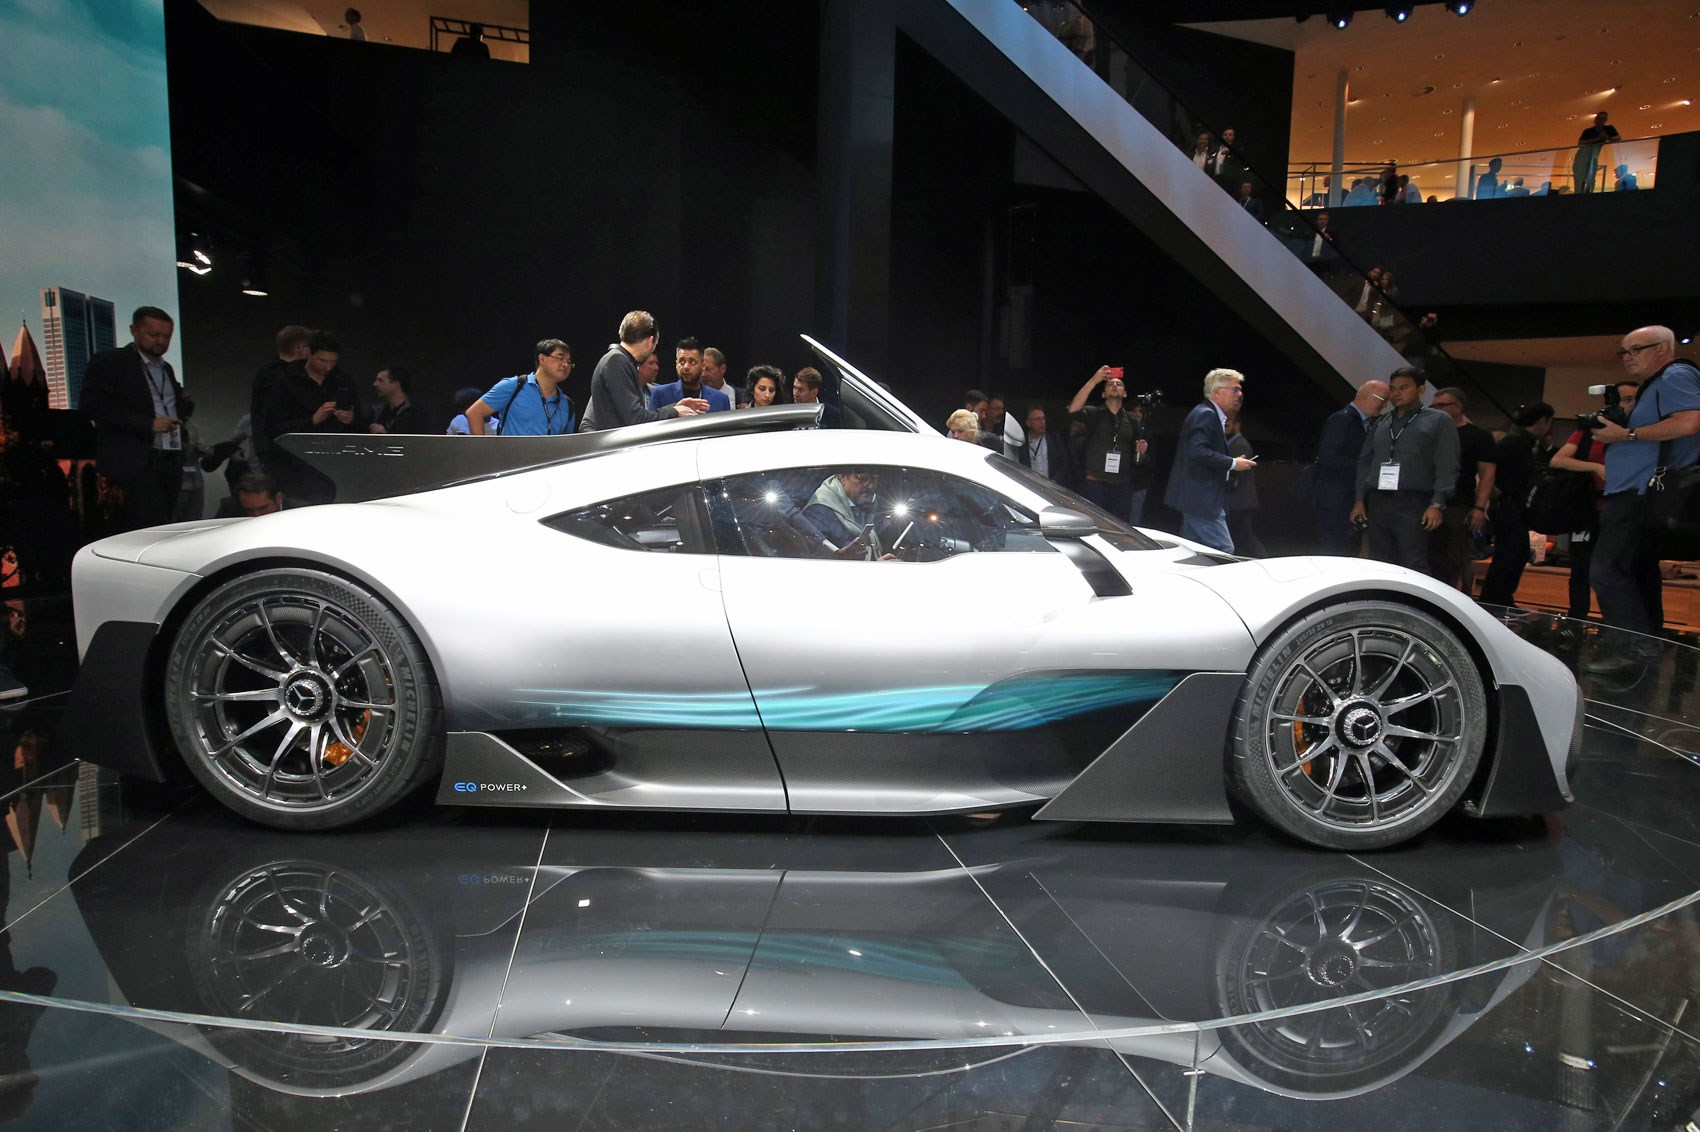 https://car-images.bauersecure.com/pagefiles/75893/21-amg-project-one.jpg